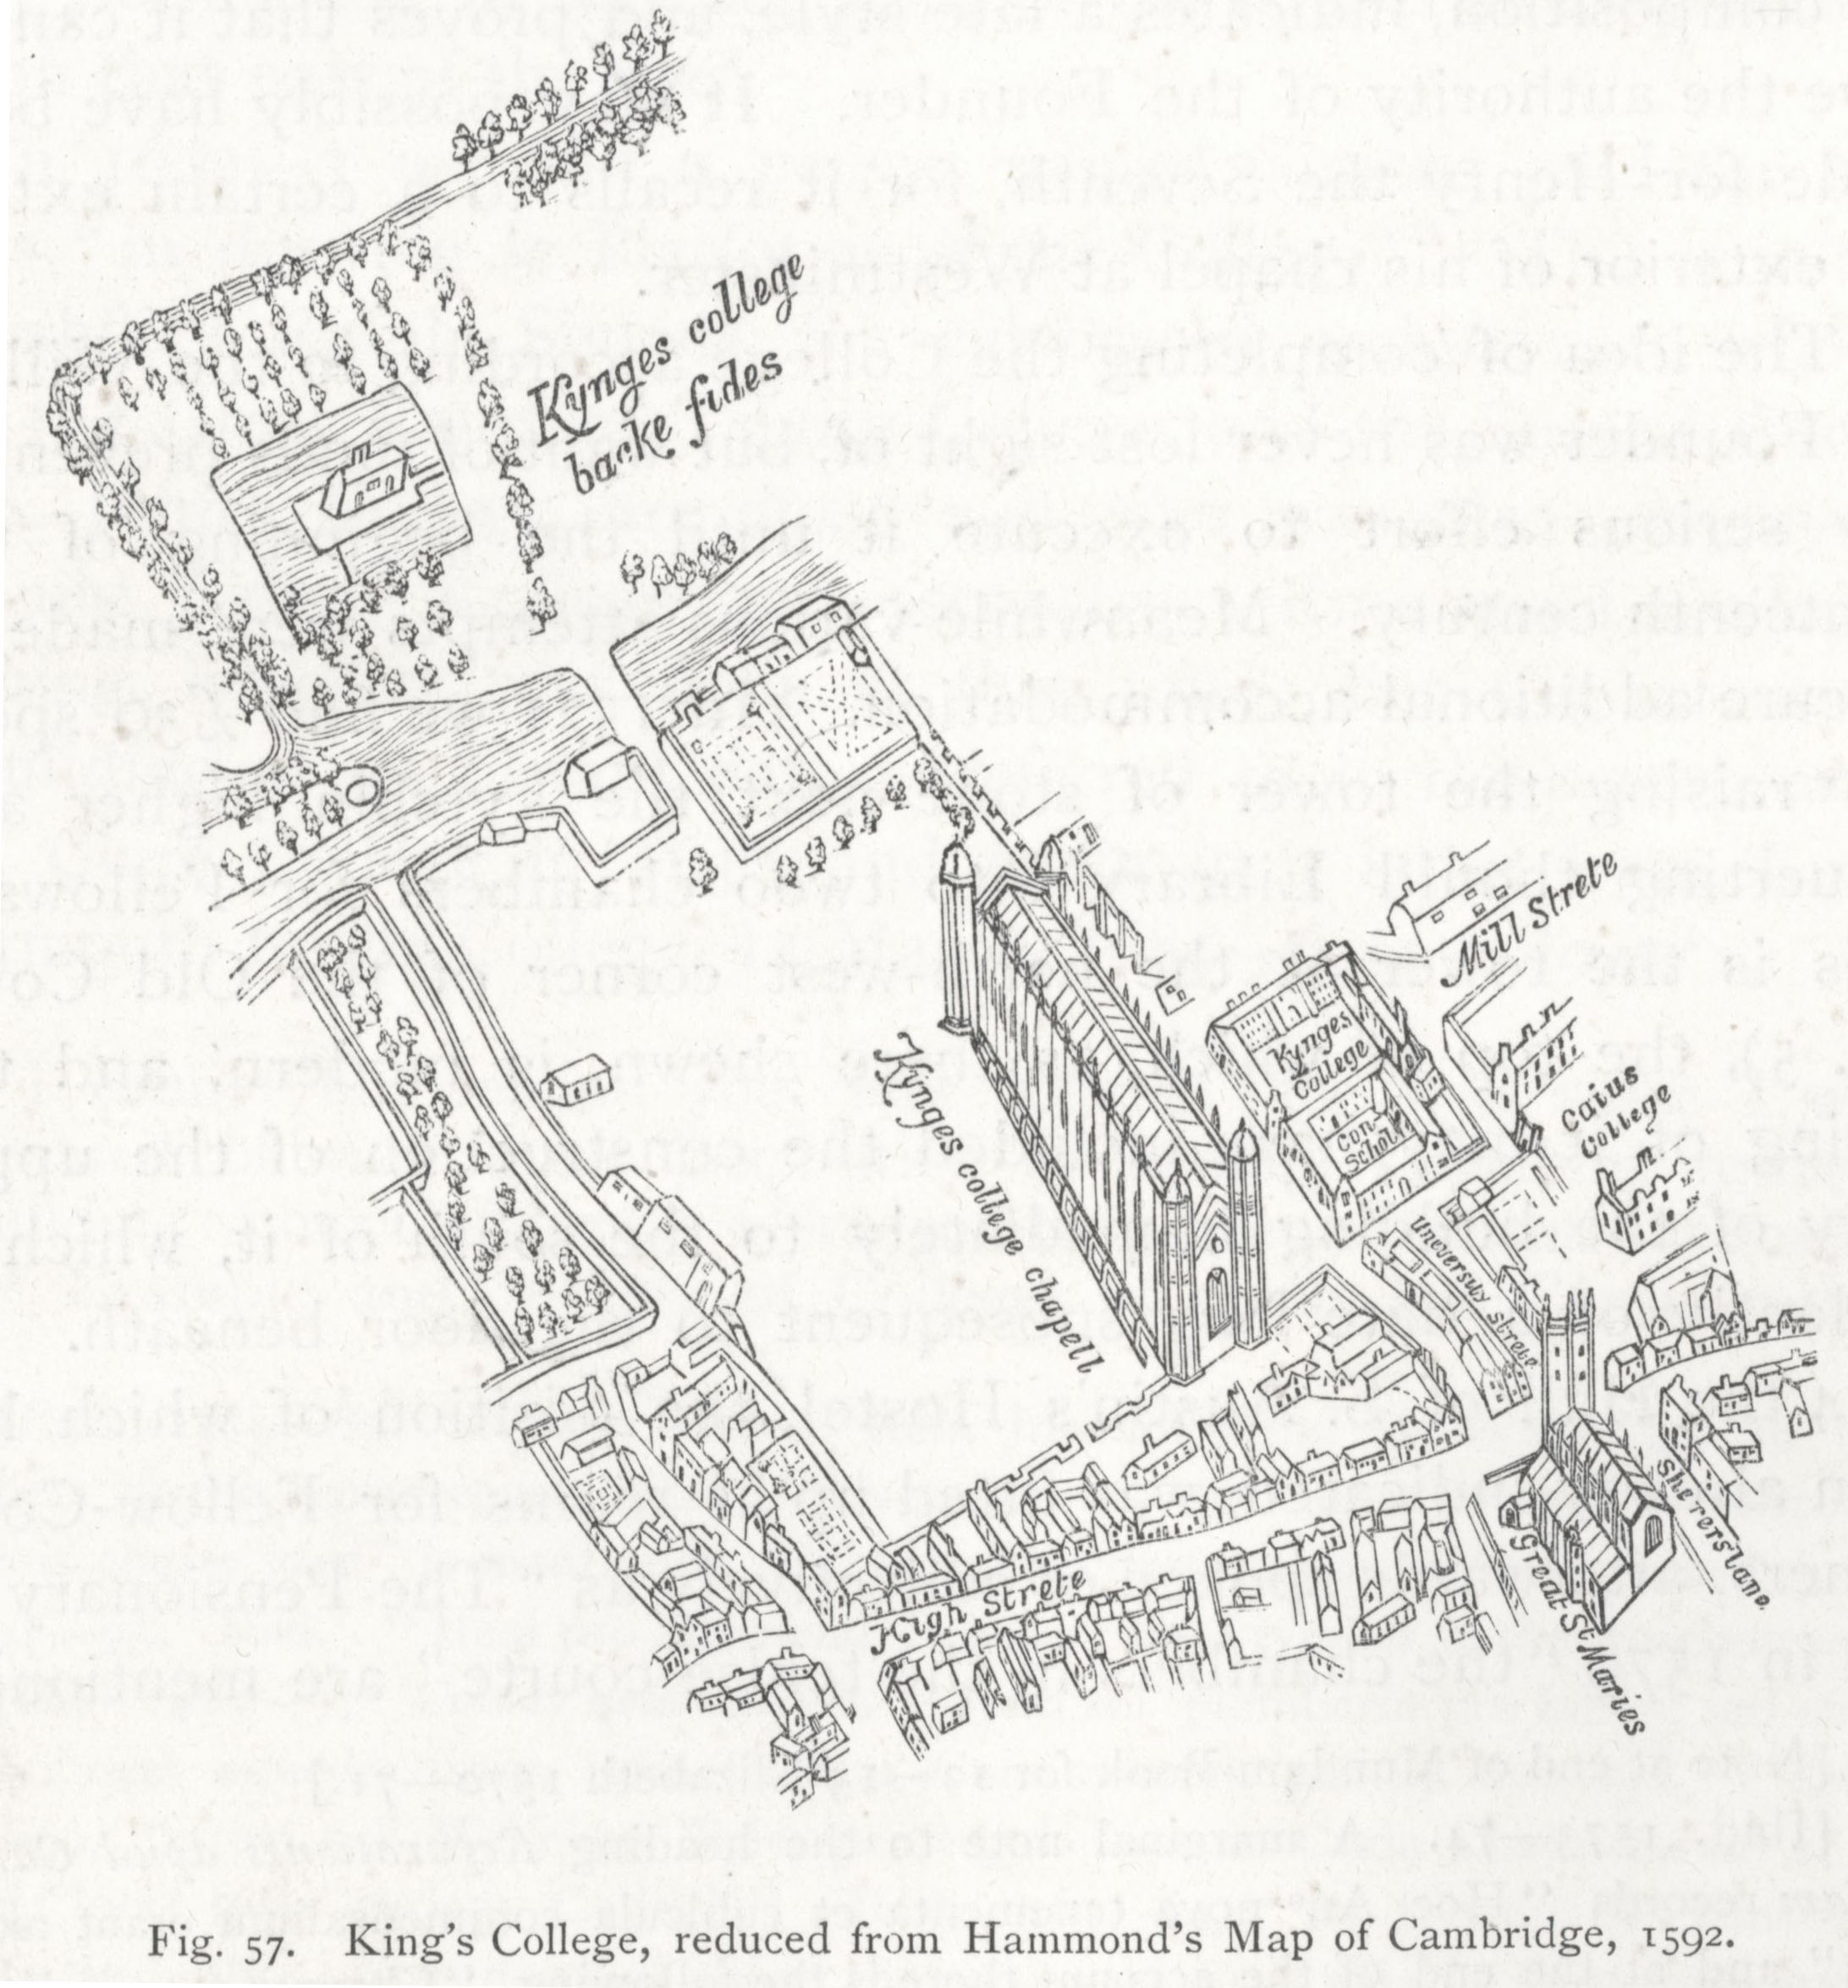 King's College, reduced from Hammond's Map of Cambridge, 1592 (Willis and Clark, vol. 1, p. 553, fig. 57).